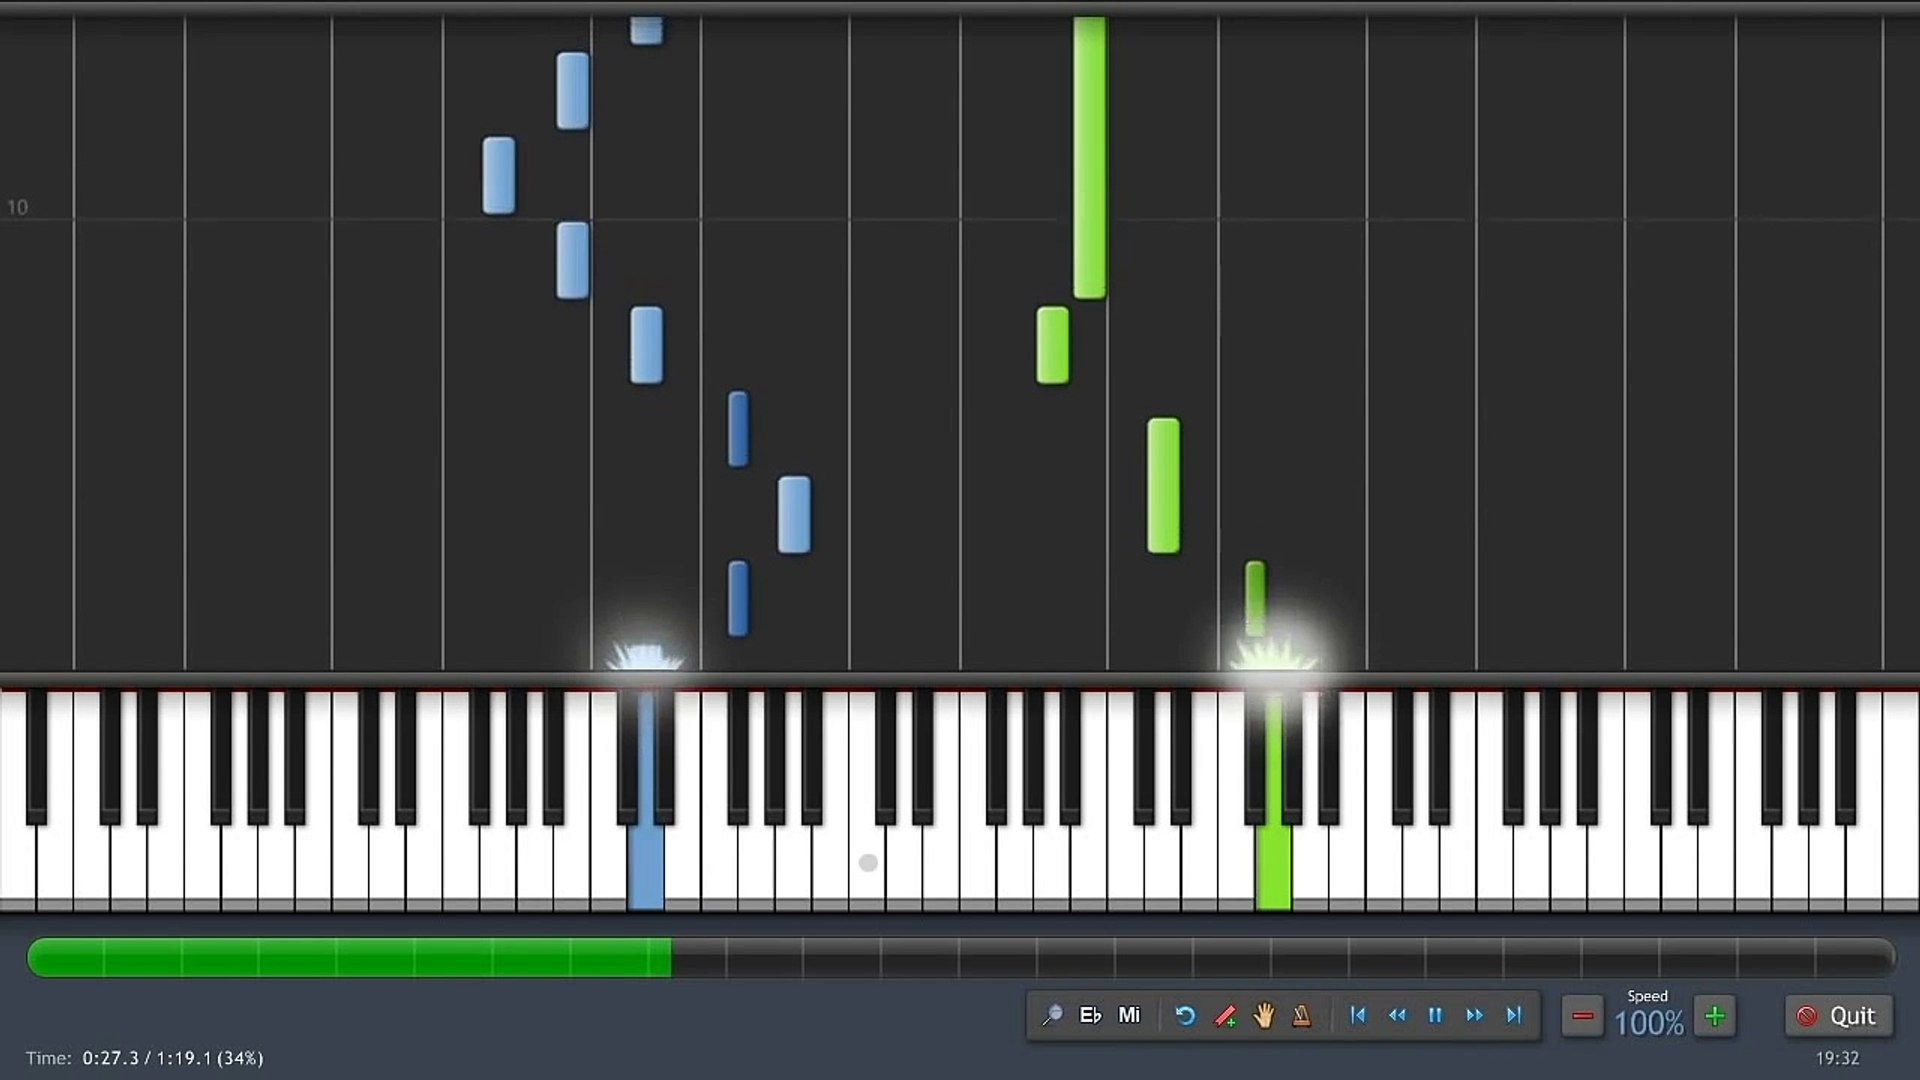 Minecraft - Wet Hands - Piano Tutorial (100% Speed) Synthesia